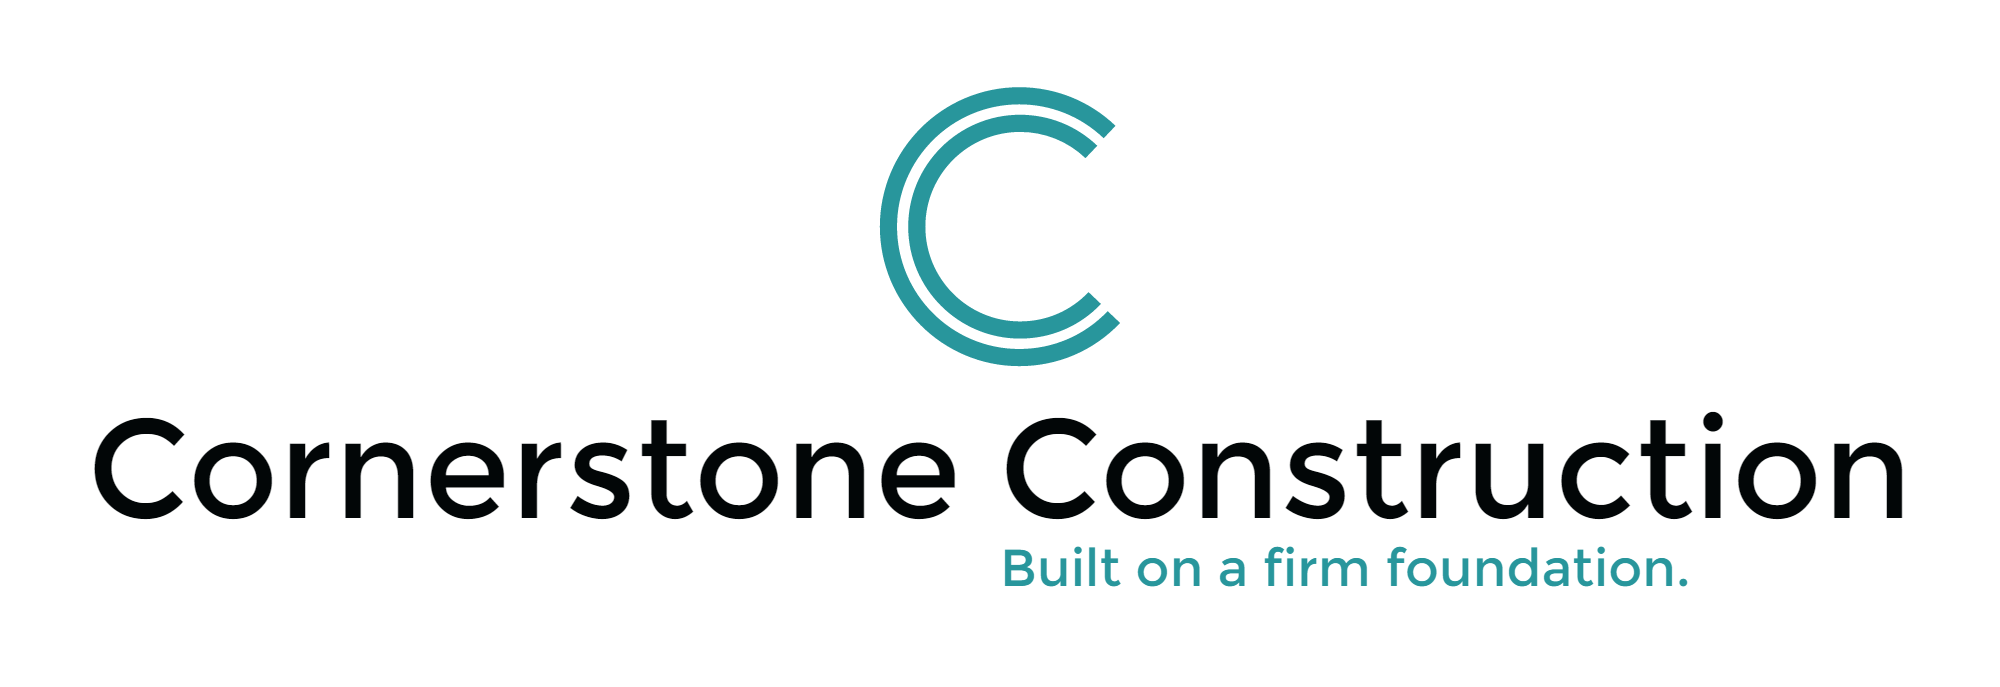 Cornerstone Construction-logo (1).png